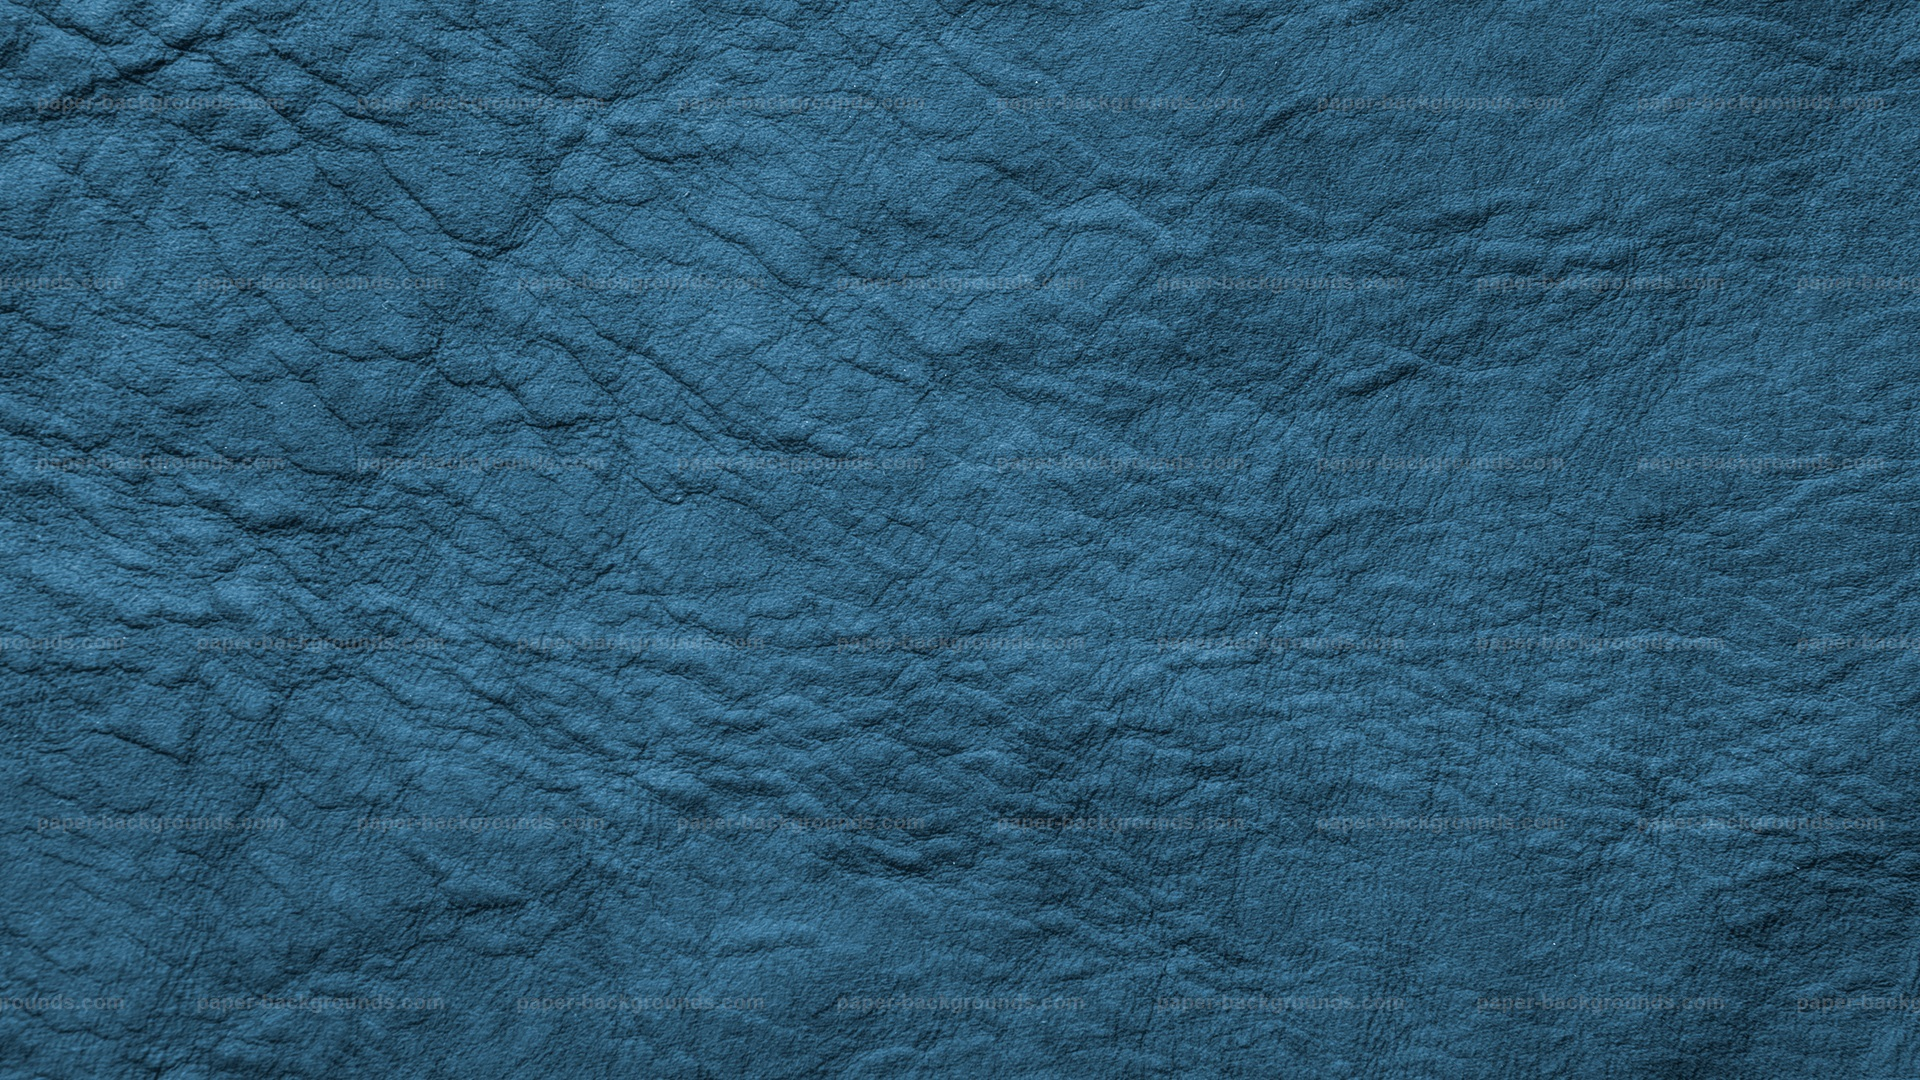 Paper Backgrounds Marine Blue Wrinkled Leather Background